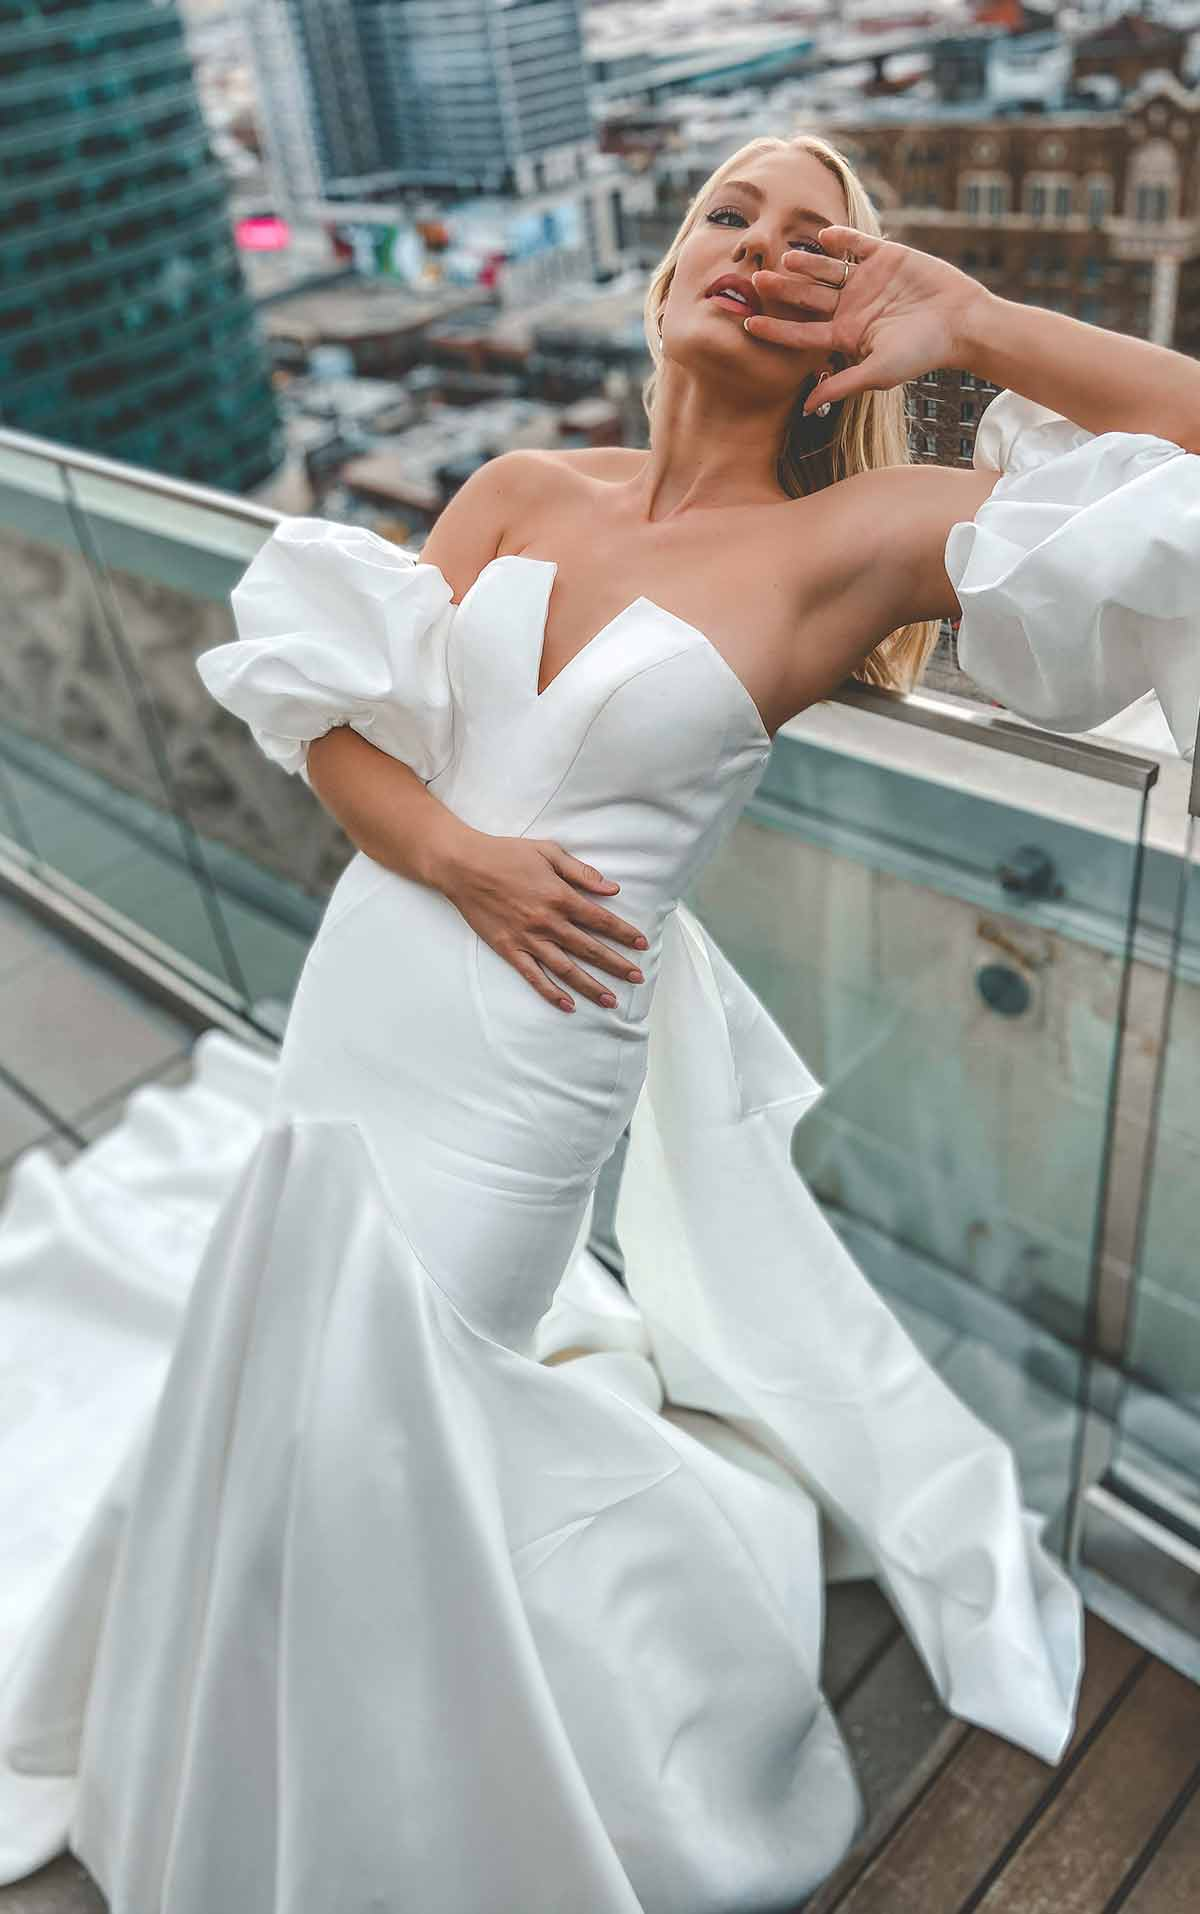 1266 Sleek and Modern Mermaid Wedding Gown with Puffed Sleeves by Martina Liana